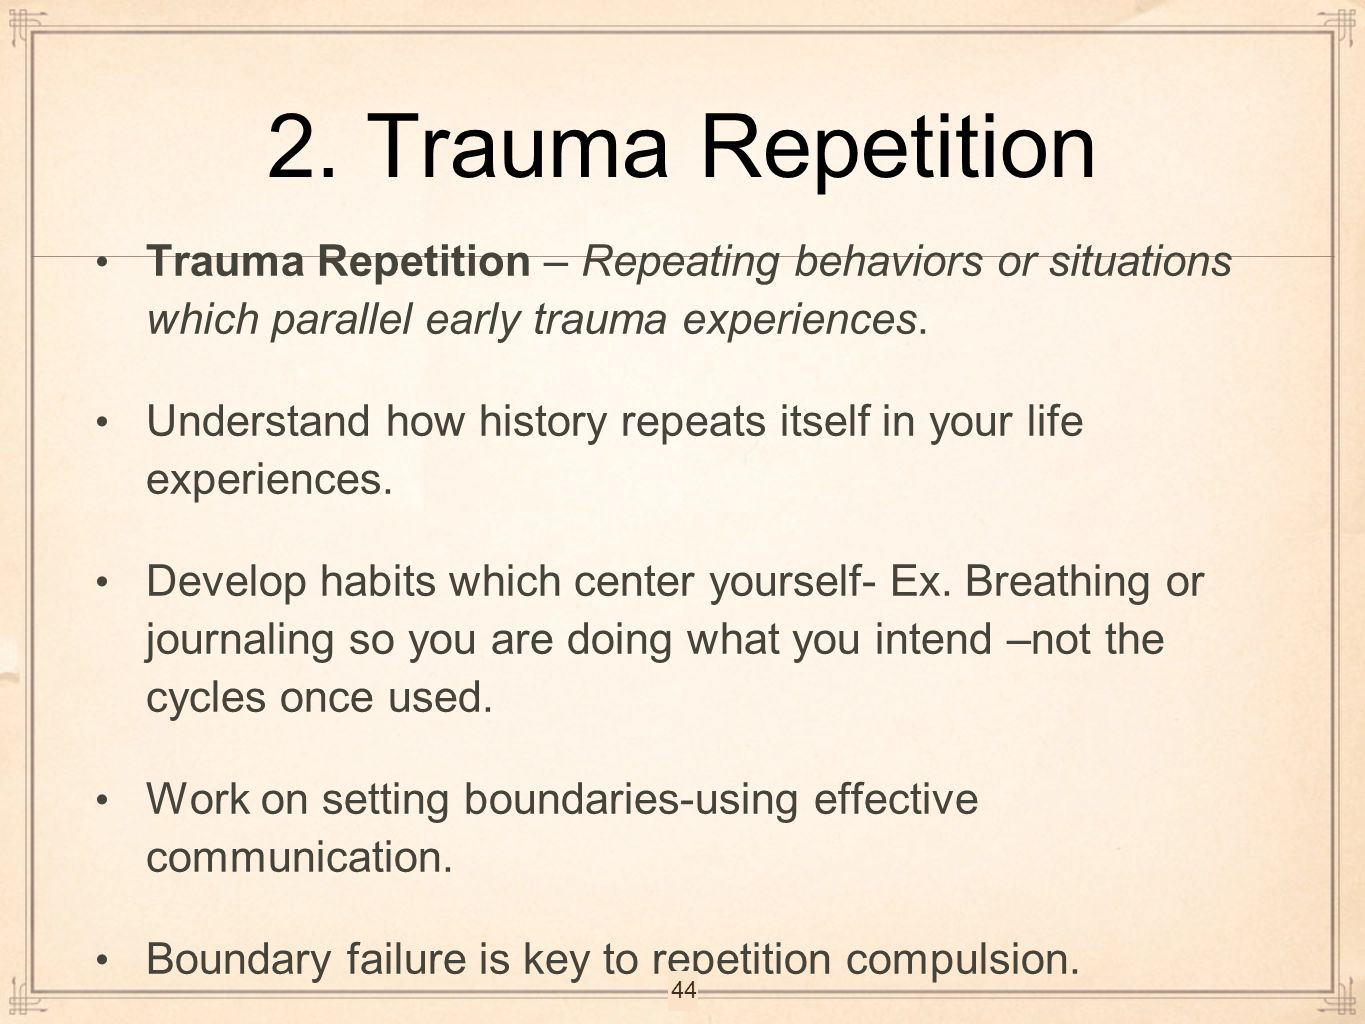 2. Trauma Repetition Trauma Repetition – Repeating behaviors or situations which parallel early trauma experiences.